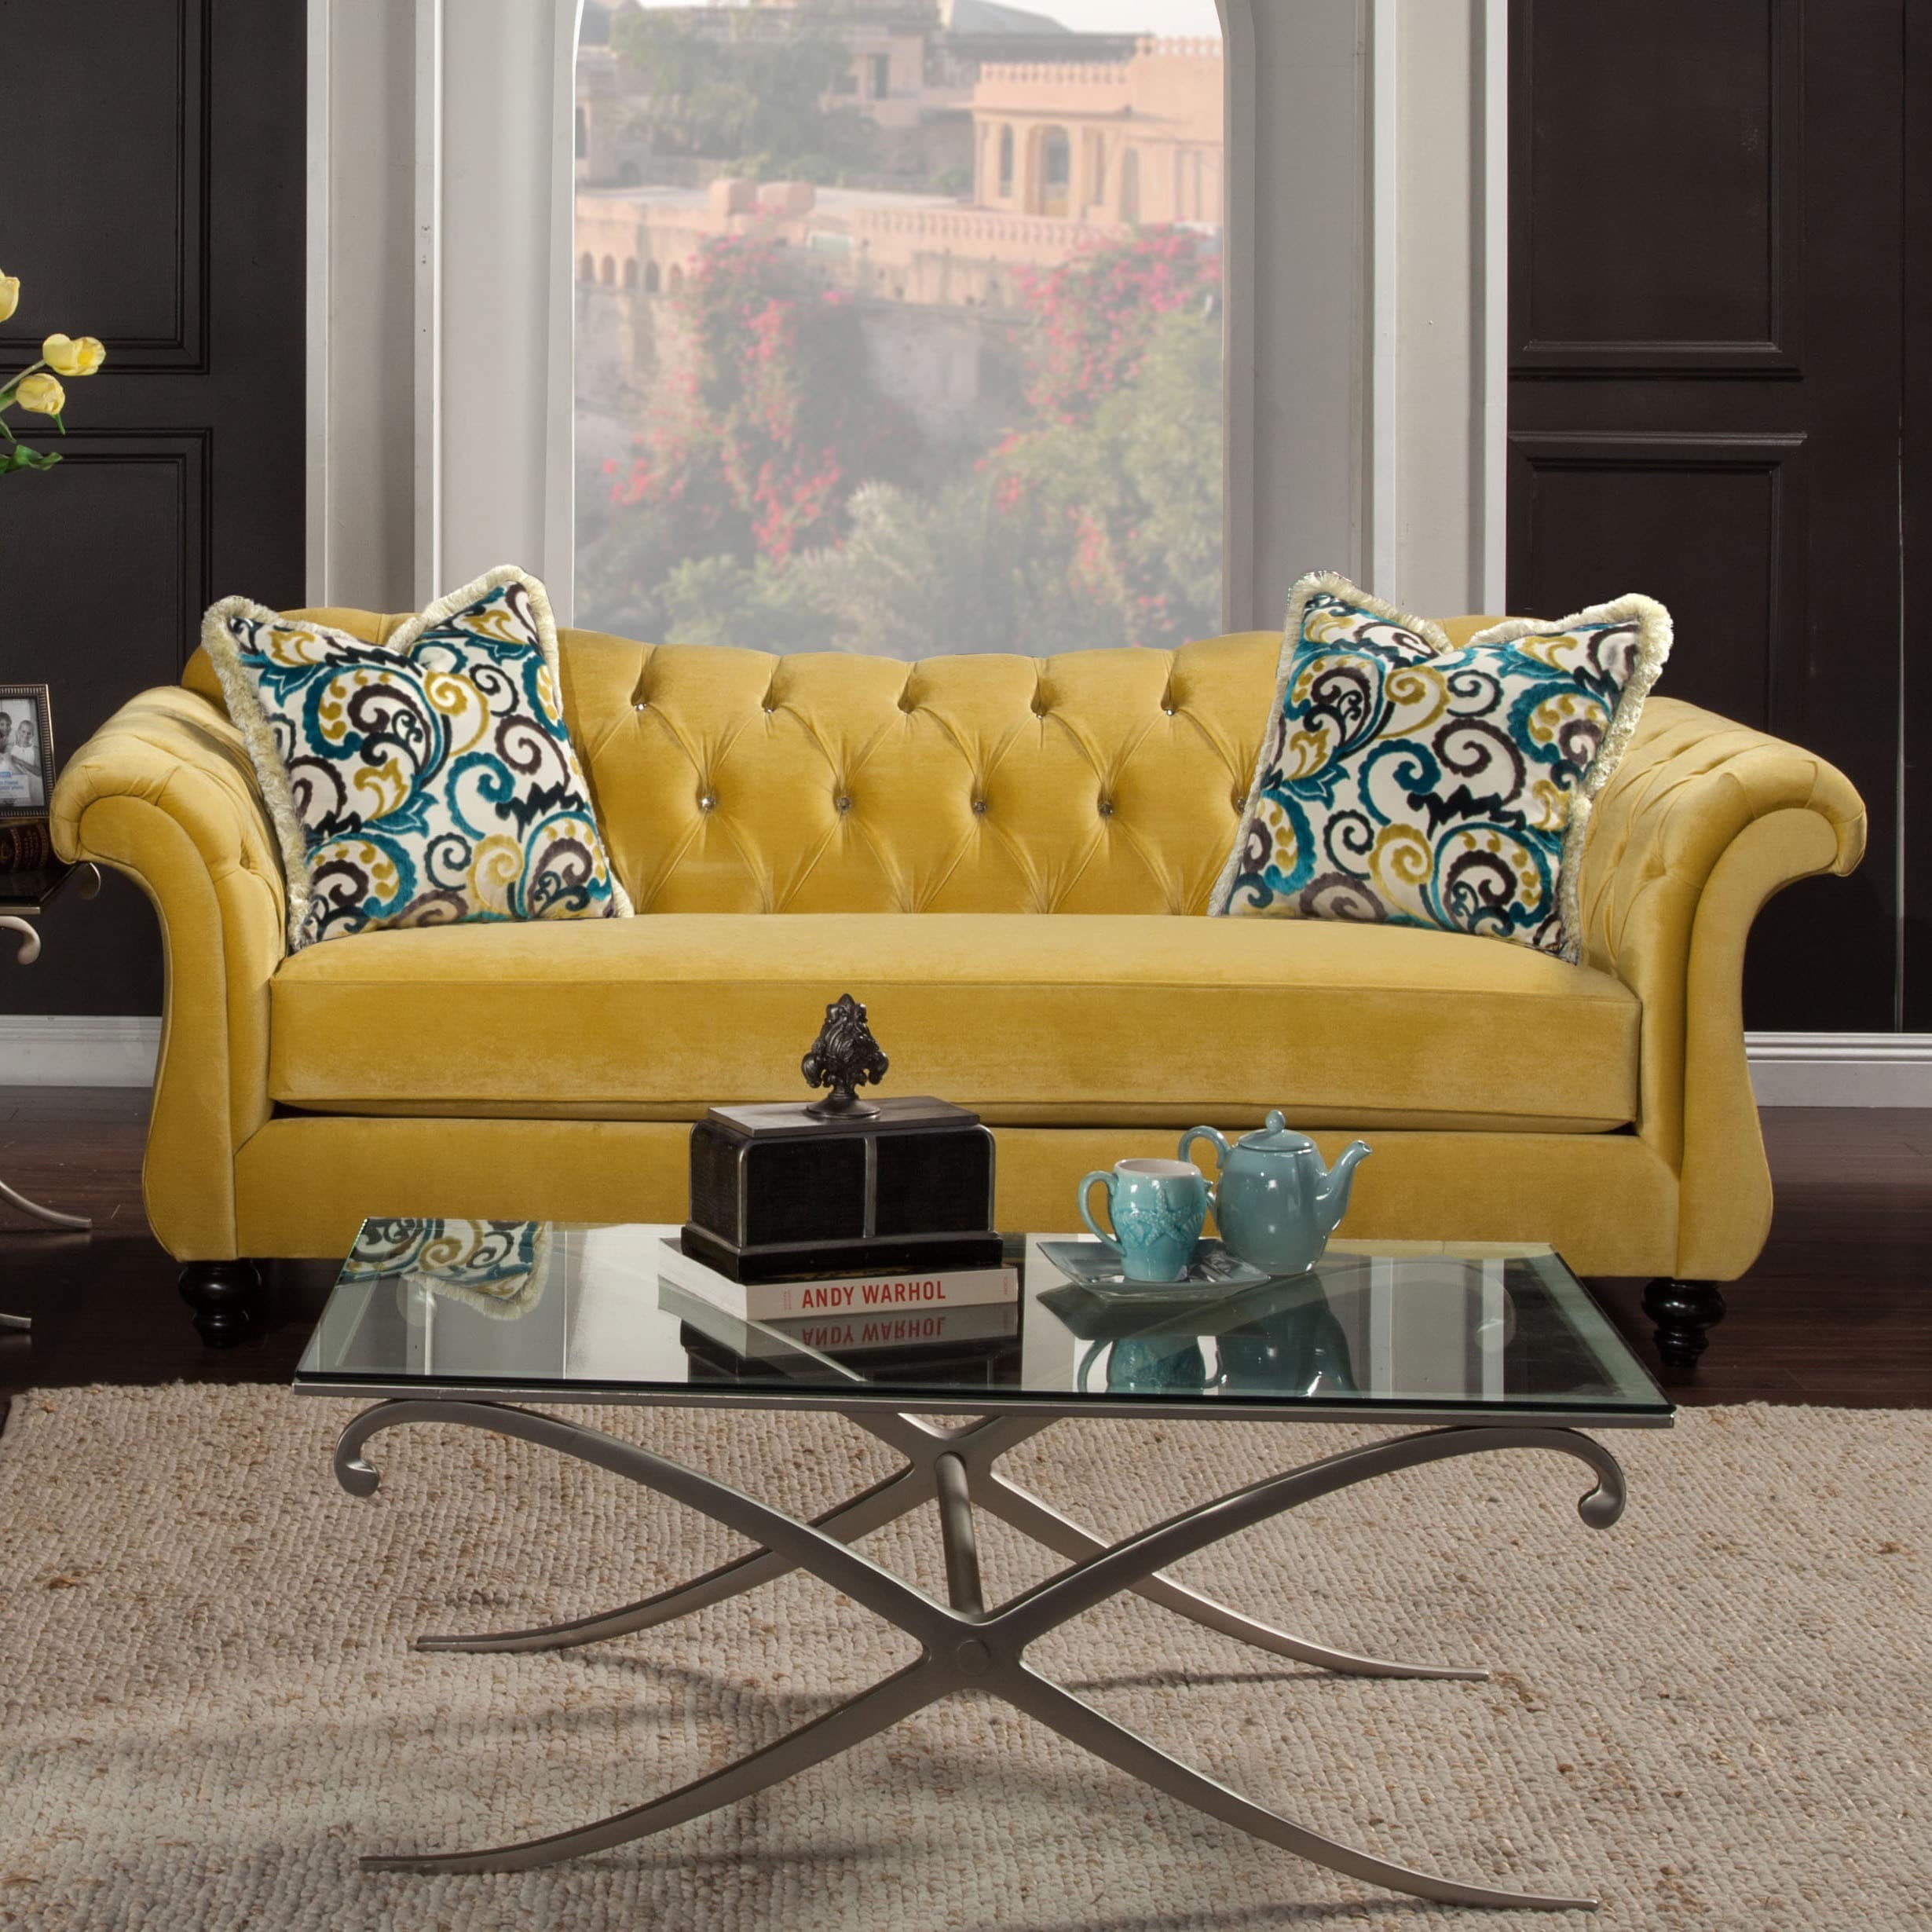 Furniture of America Agatha Traditional Tufted Sofa - Free Shipping Today -  Overstock.com - 16437330